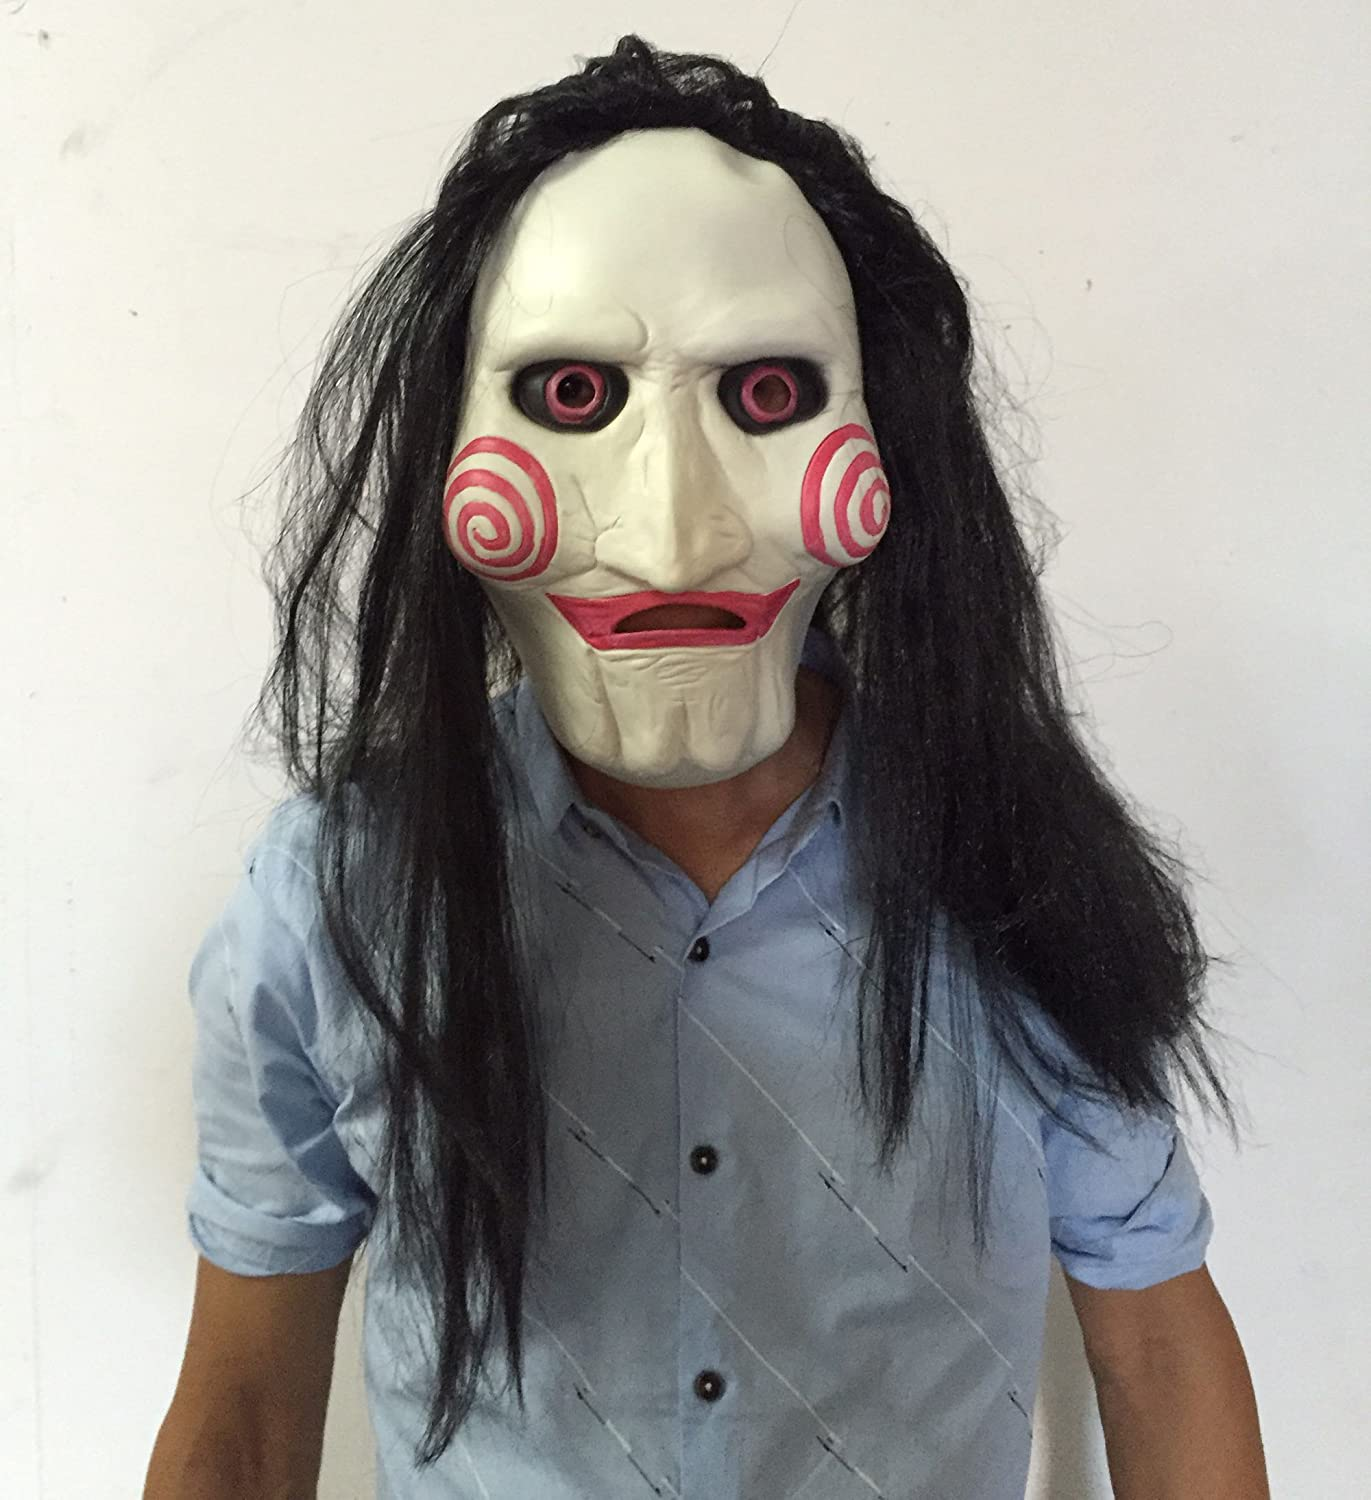 KINGEVA Party Halloween Costume Latex Horror Clown Saw Mask Super Lifelike Horrifying The Puppet Mask From Movie Jigsaw Full Mask Head Latex Masquerade Prop Christmas, Meets your SCARE criteria!